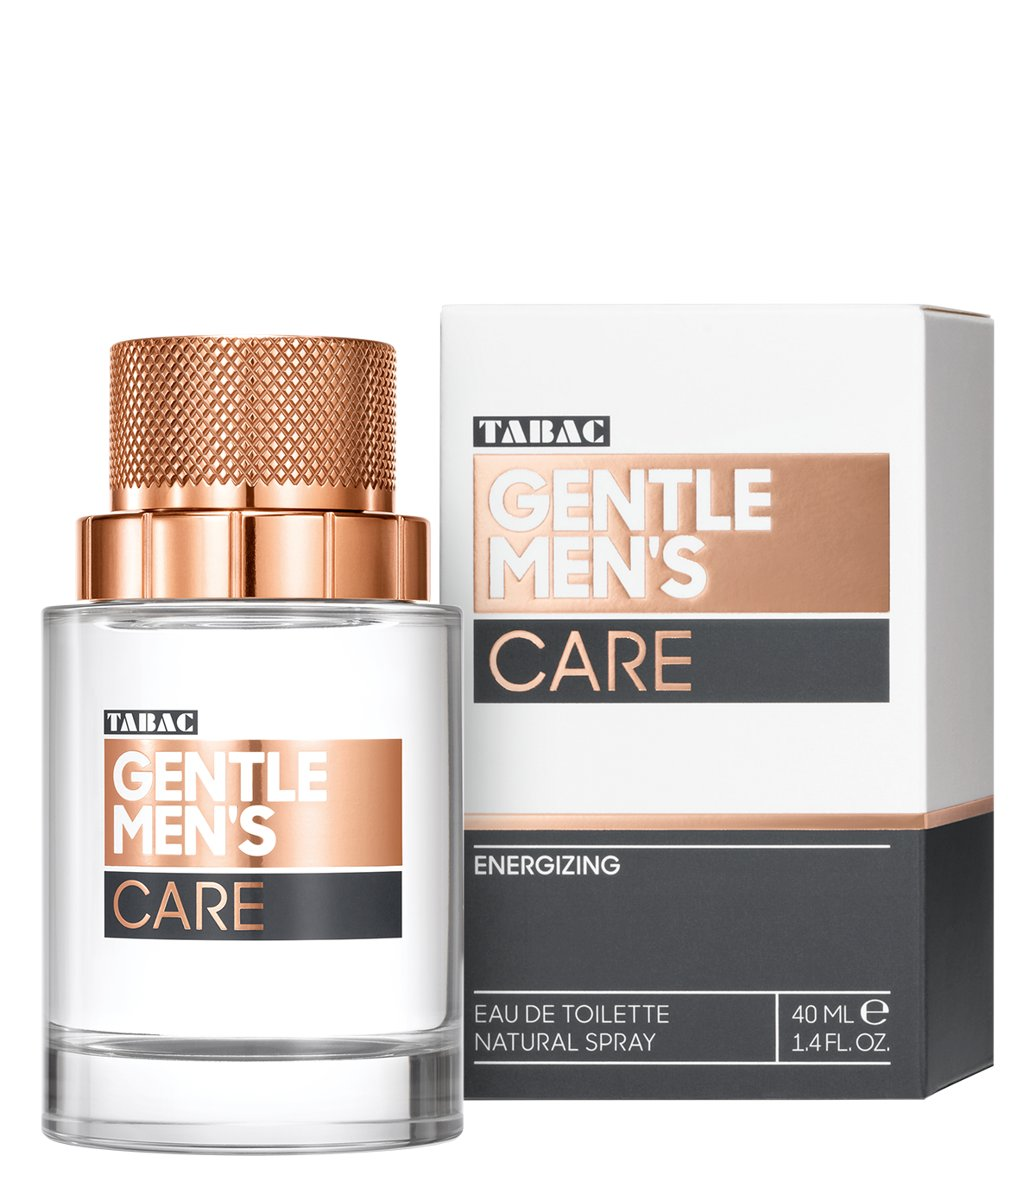 maurer & wirtz tabac gentle men's care